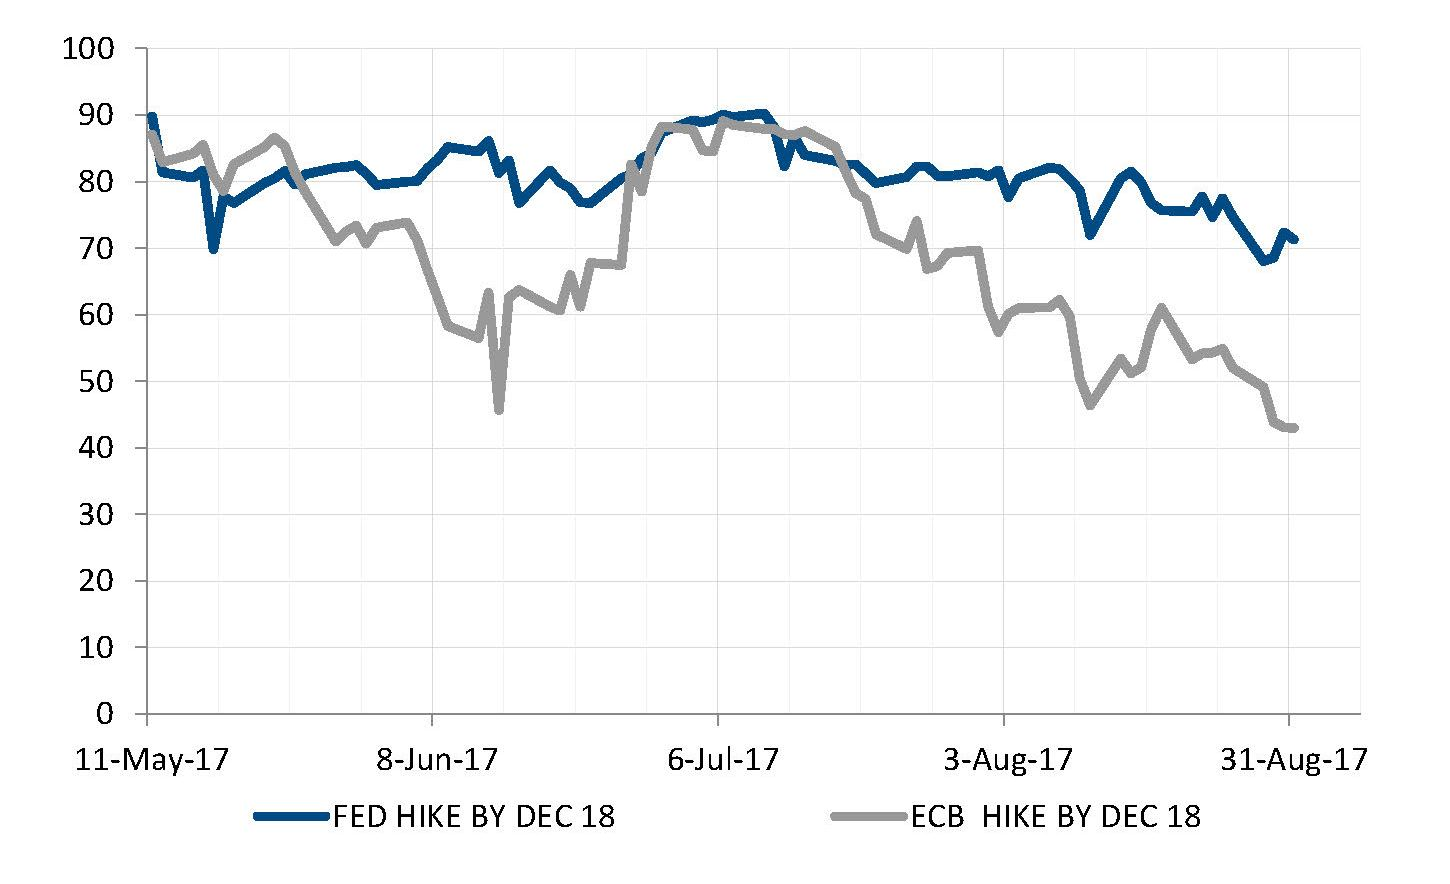 Market-based probability of rate hikes slid during the summer